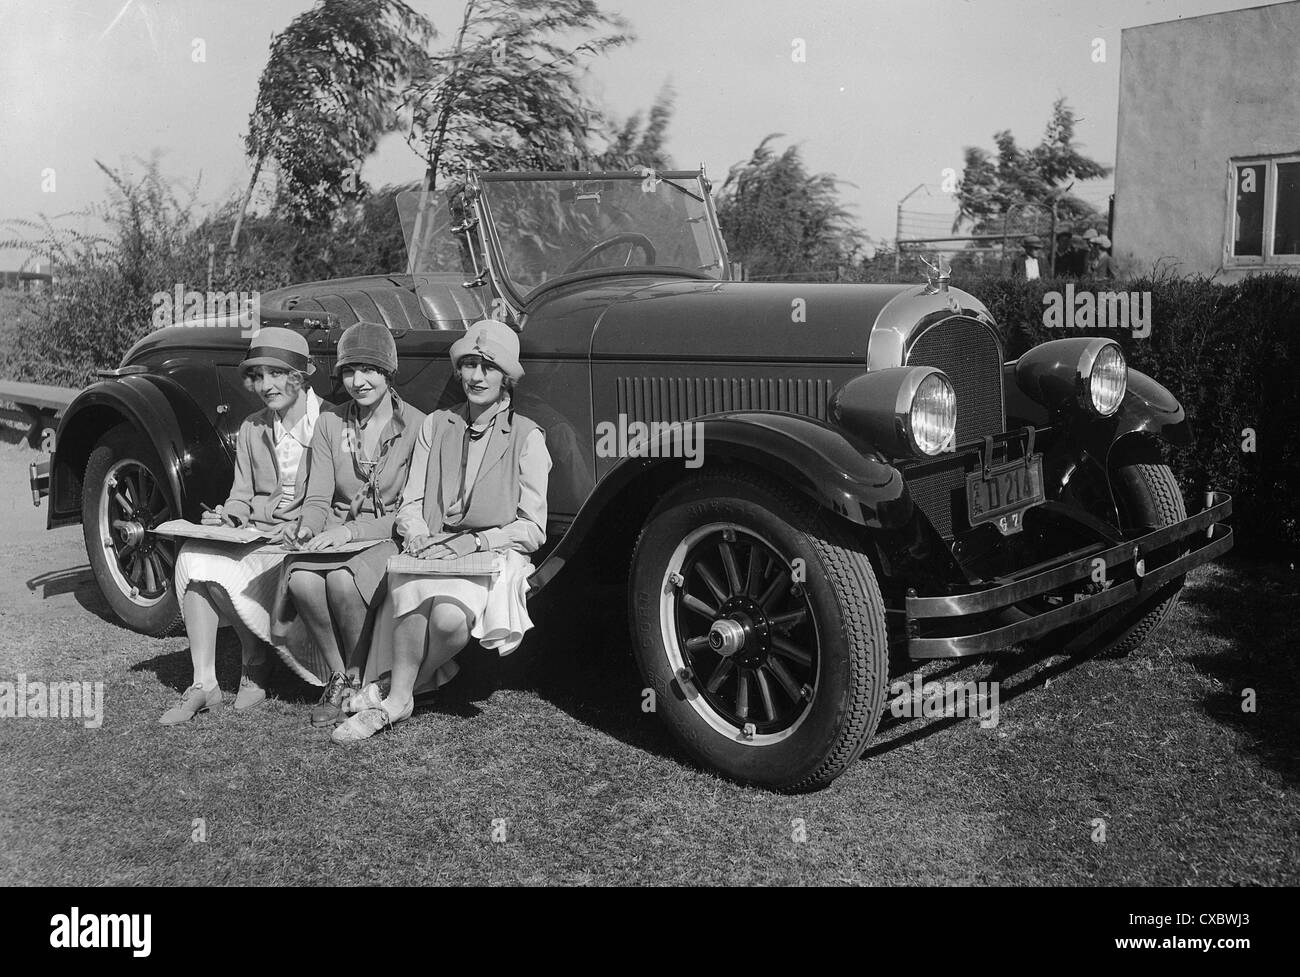 1925 Chrysler 70 with fashionable ladies - Stock Image